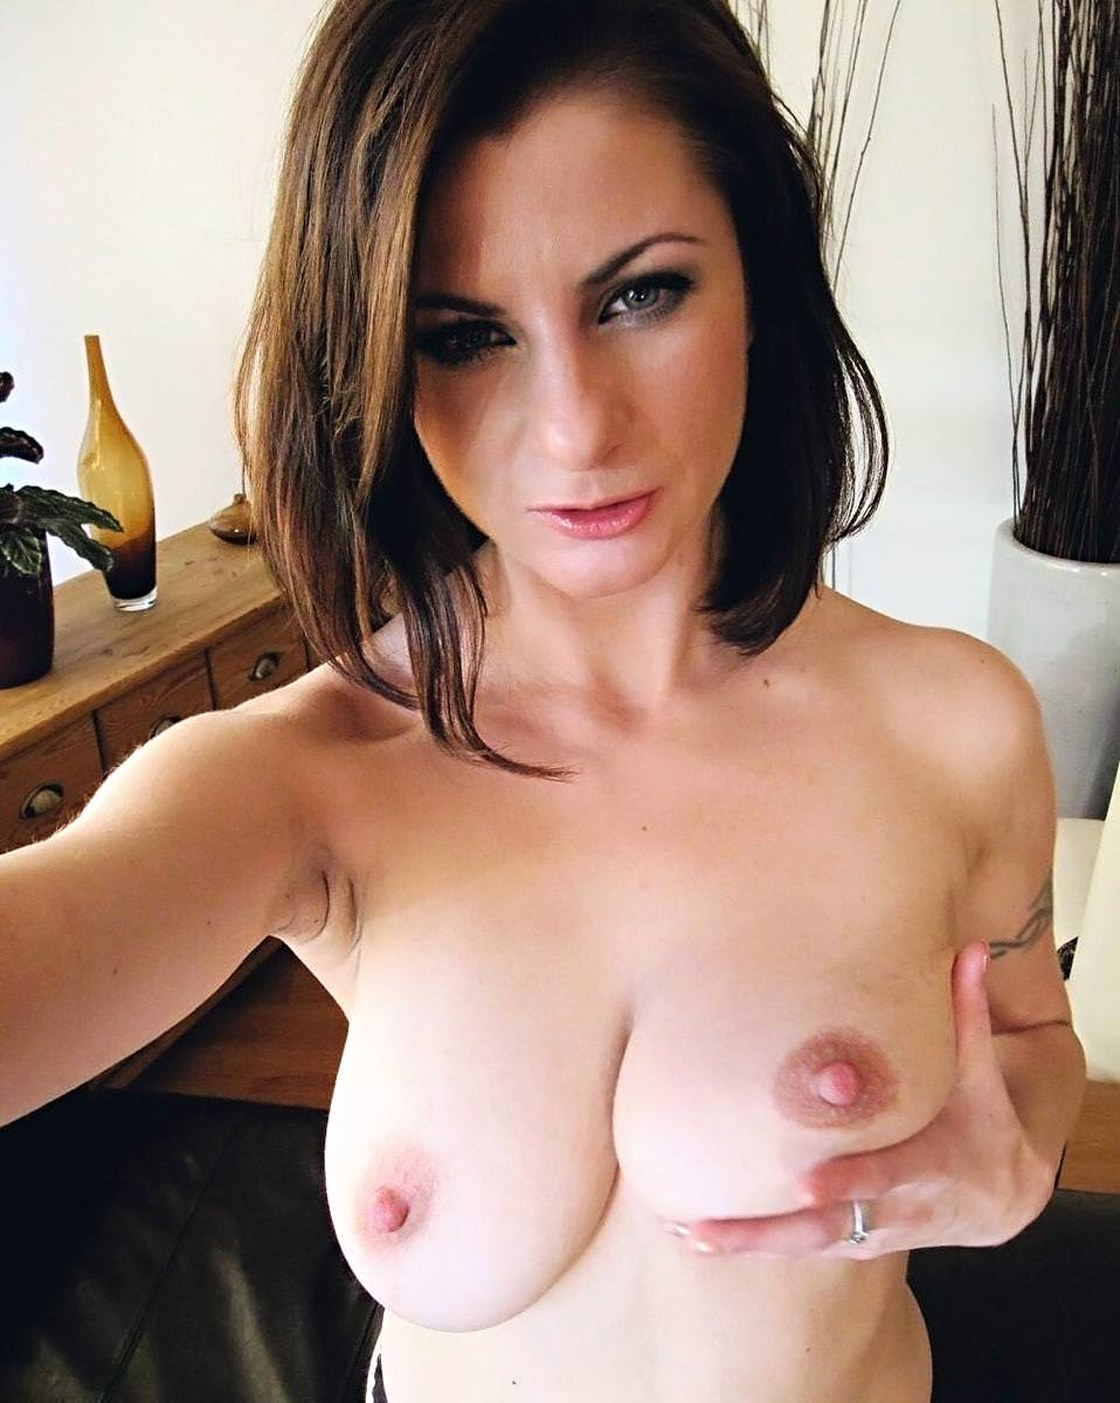 Beautiful busty brunette doing nude selfie